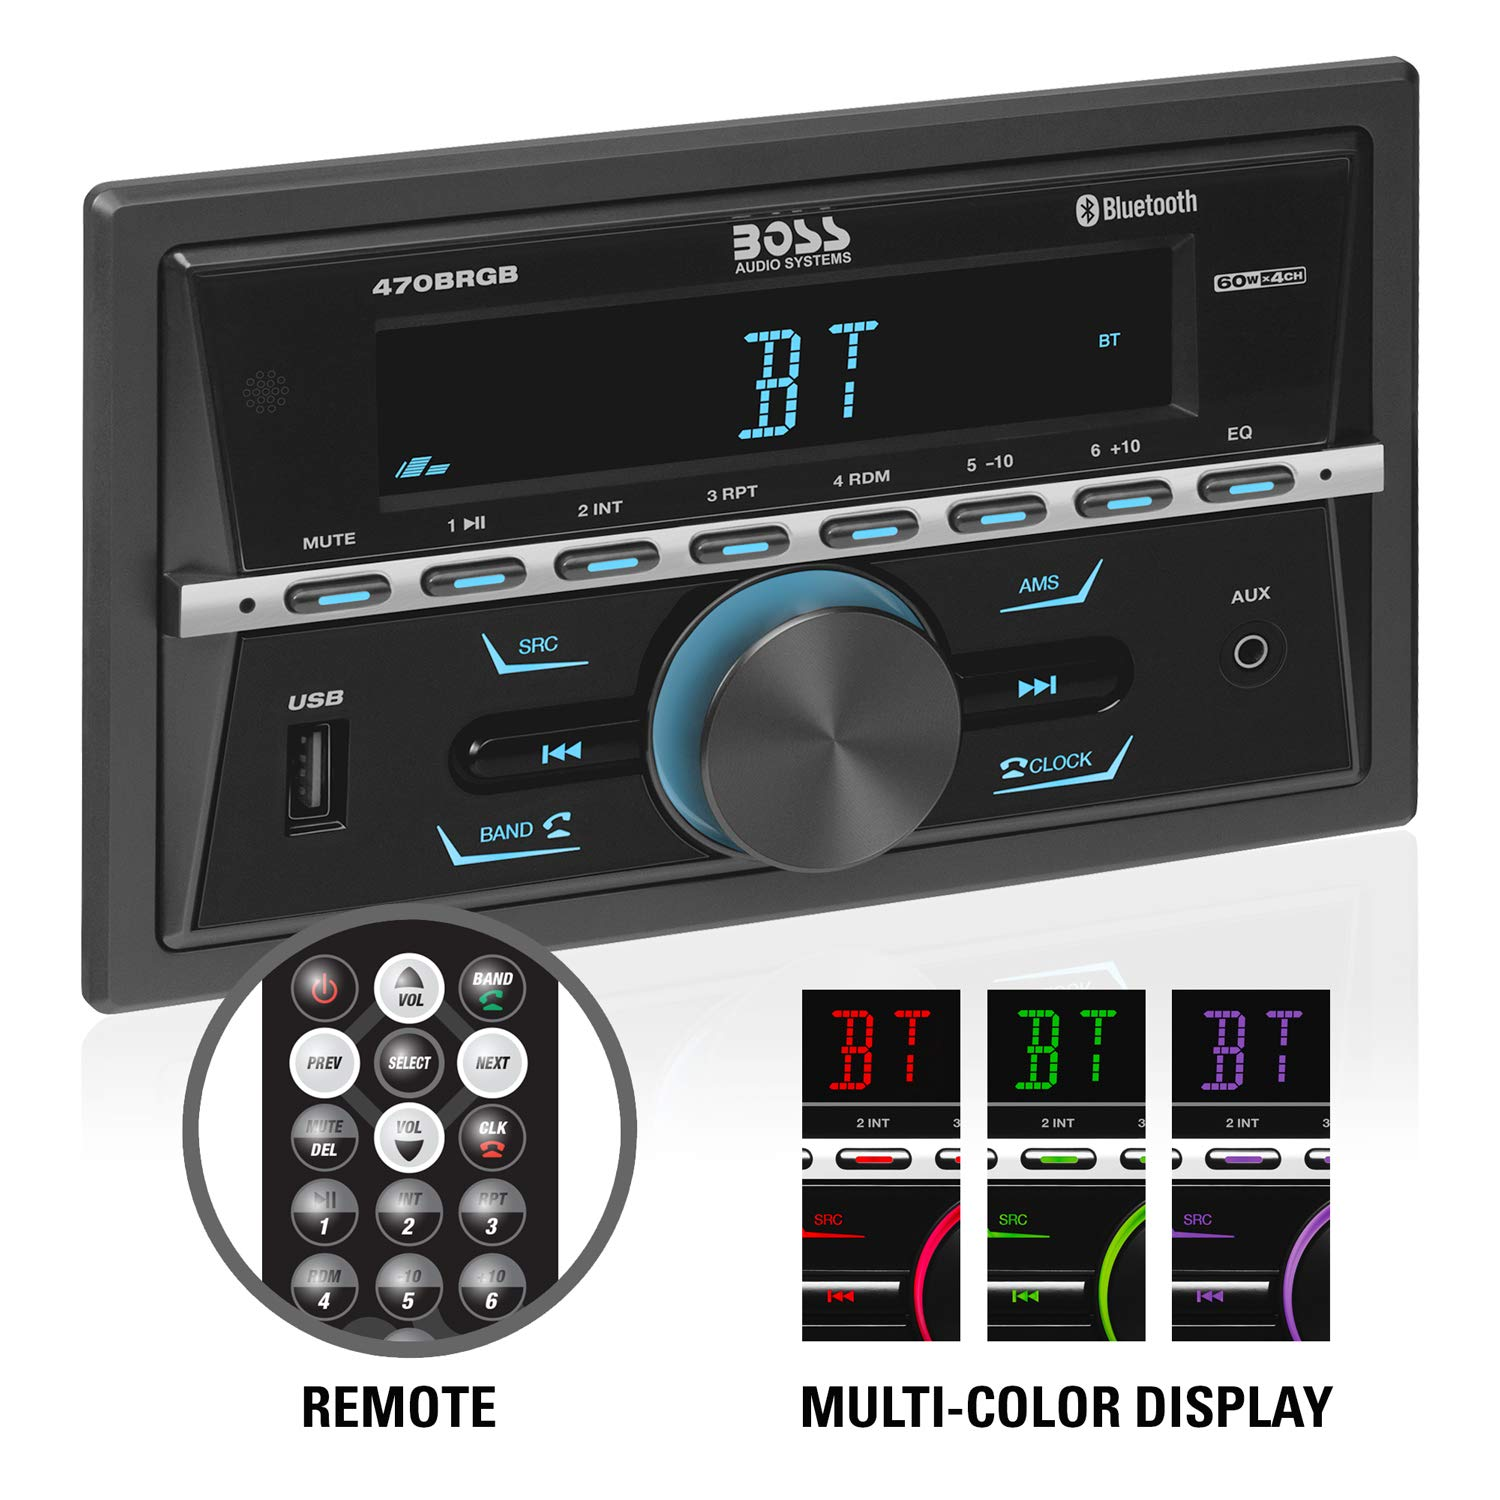 BOSS Audio Systems 470BRGB Multimedia Car Stereo - Double Din, Bluetooth Audio and Calling, MP3 Player, USB Port, AUX Input, AM FM Radio Receiver, - no CD DVD, Multi Color Illumination by BOSS Audio Systems